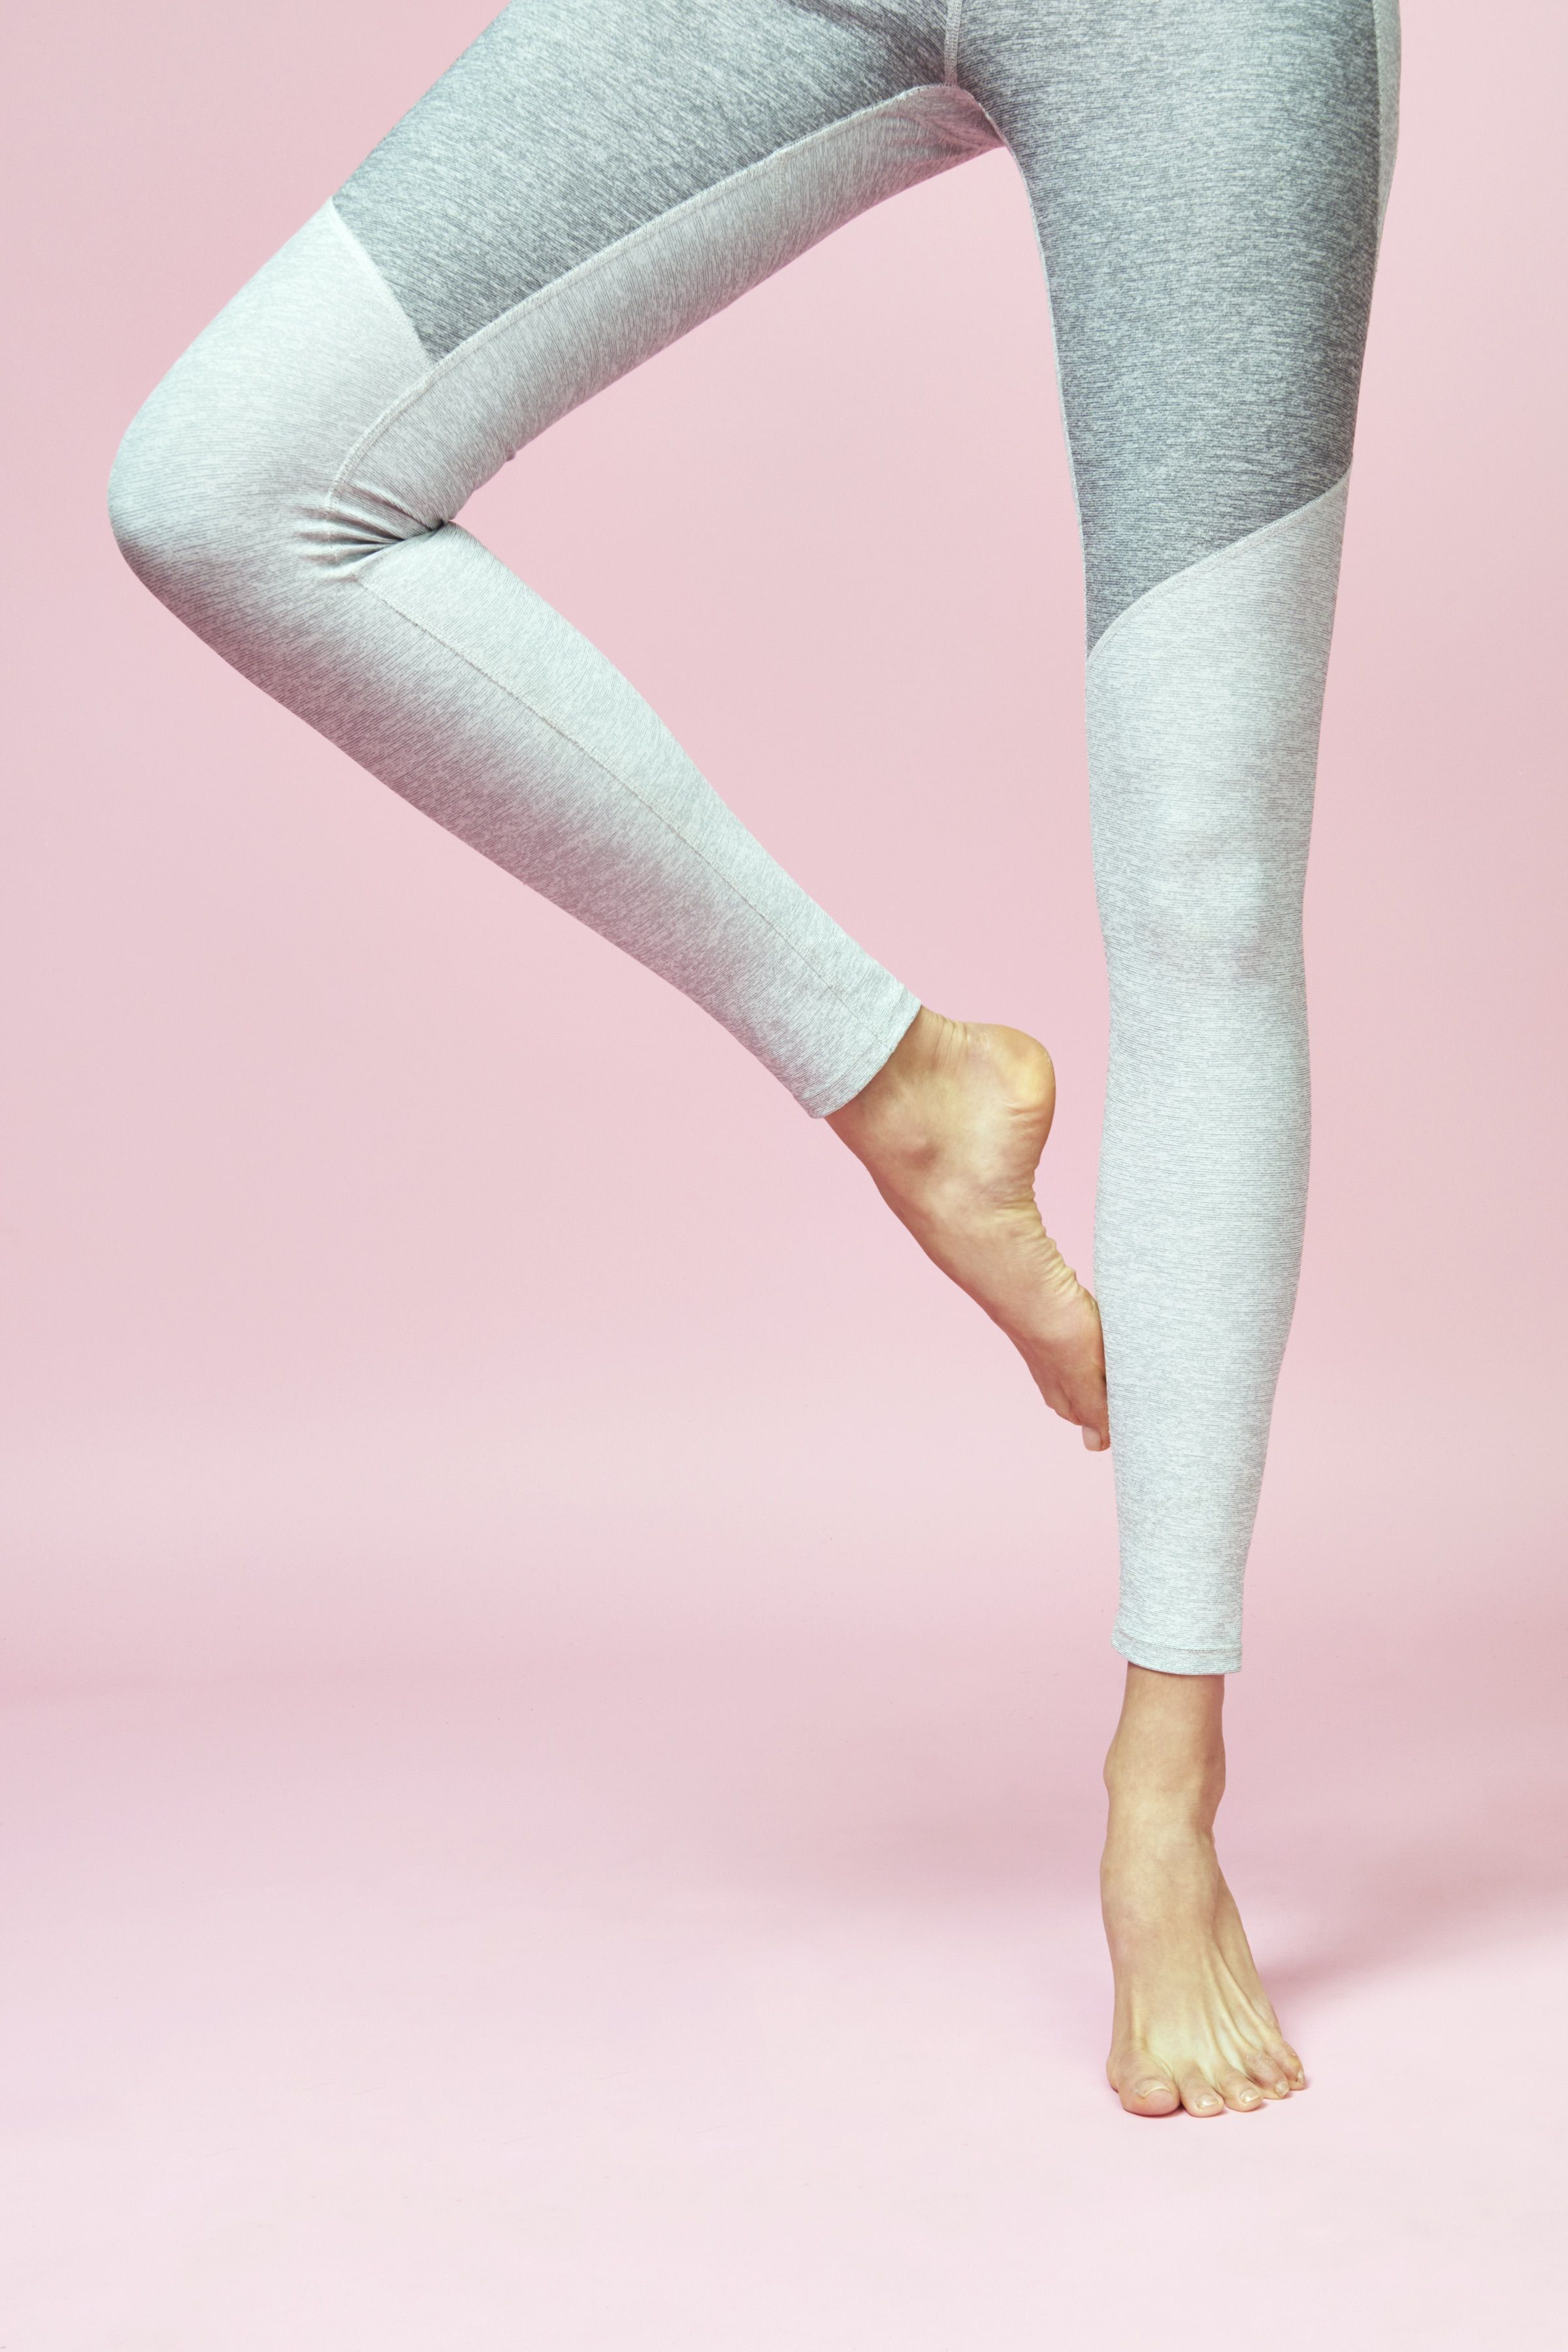 Built for a body on the move, the Warmup Legging is crafted with our OV Textured Compression fabric to hide imperfections and mask sweat. Our most versatile teammate with just the right mix of flexibi